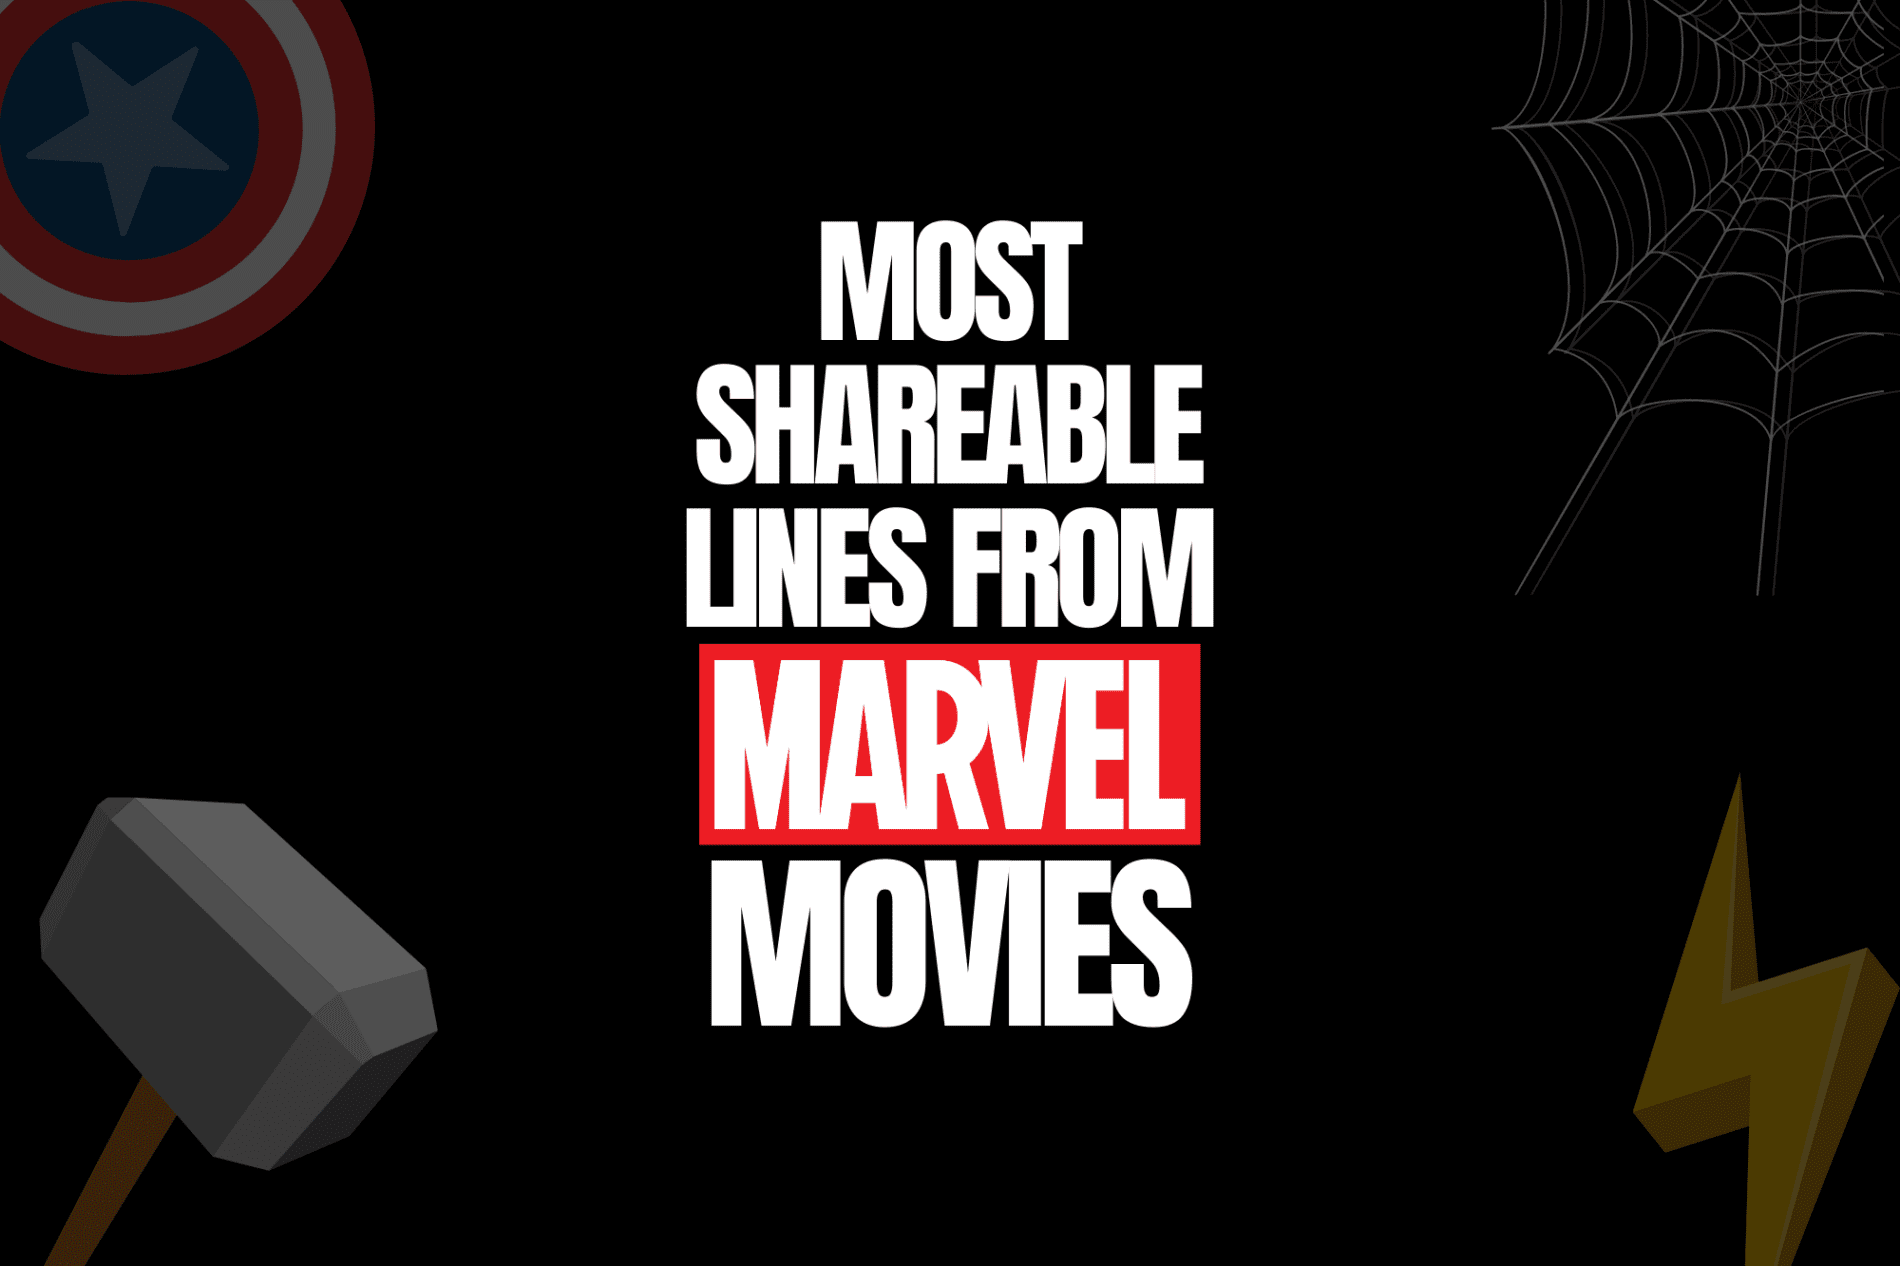 most shareable lines from marvel movies